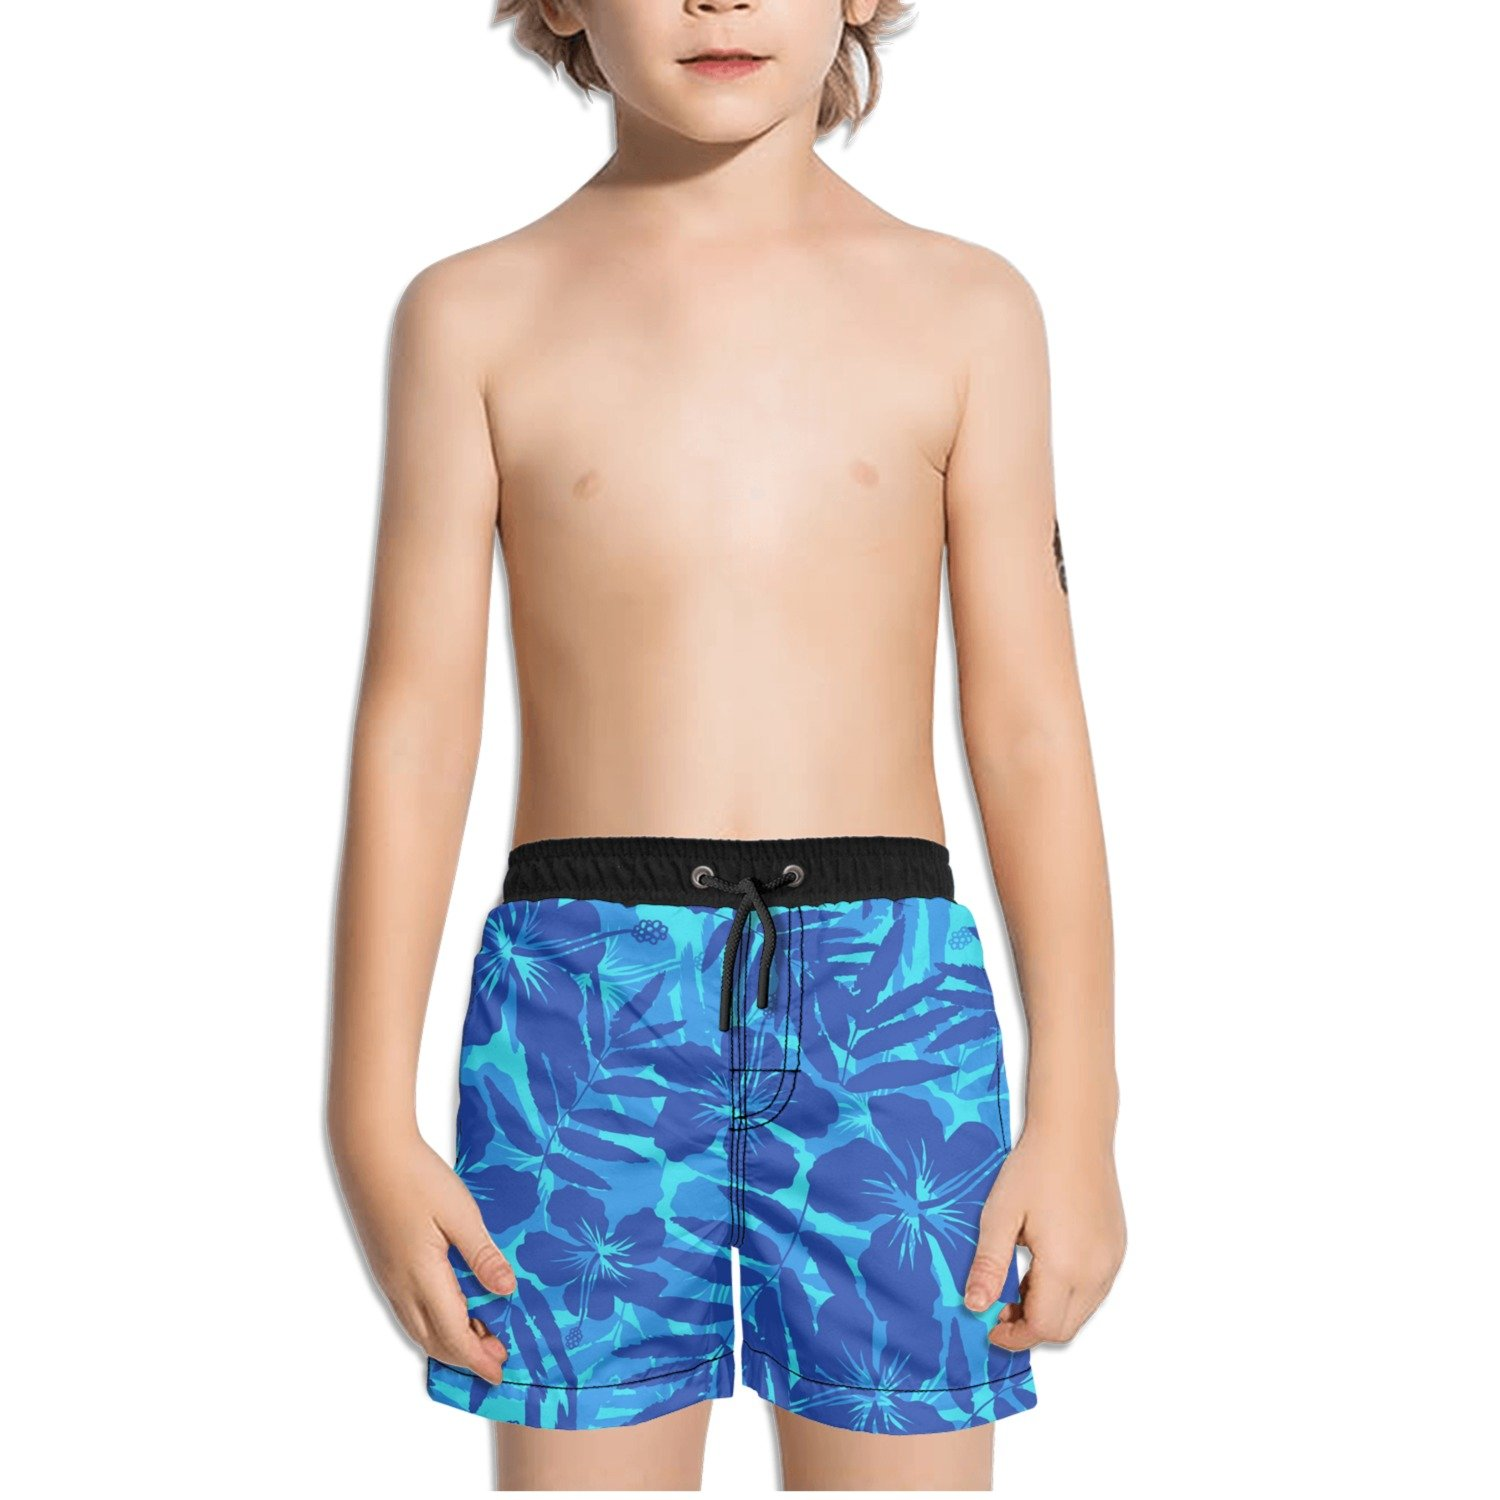 Ouxioaz Boys' Swim Trunk Blue Tropical Flowers Beach Board Shorts